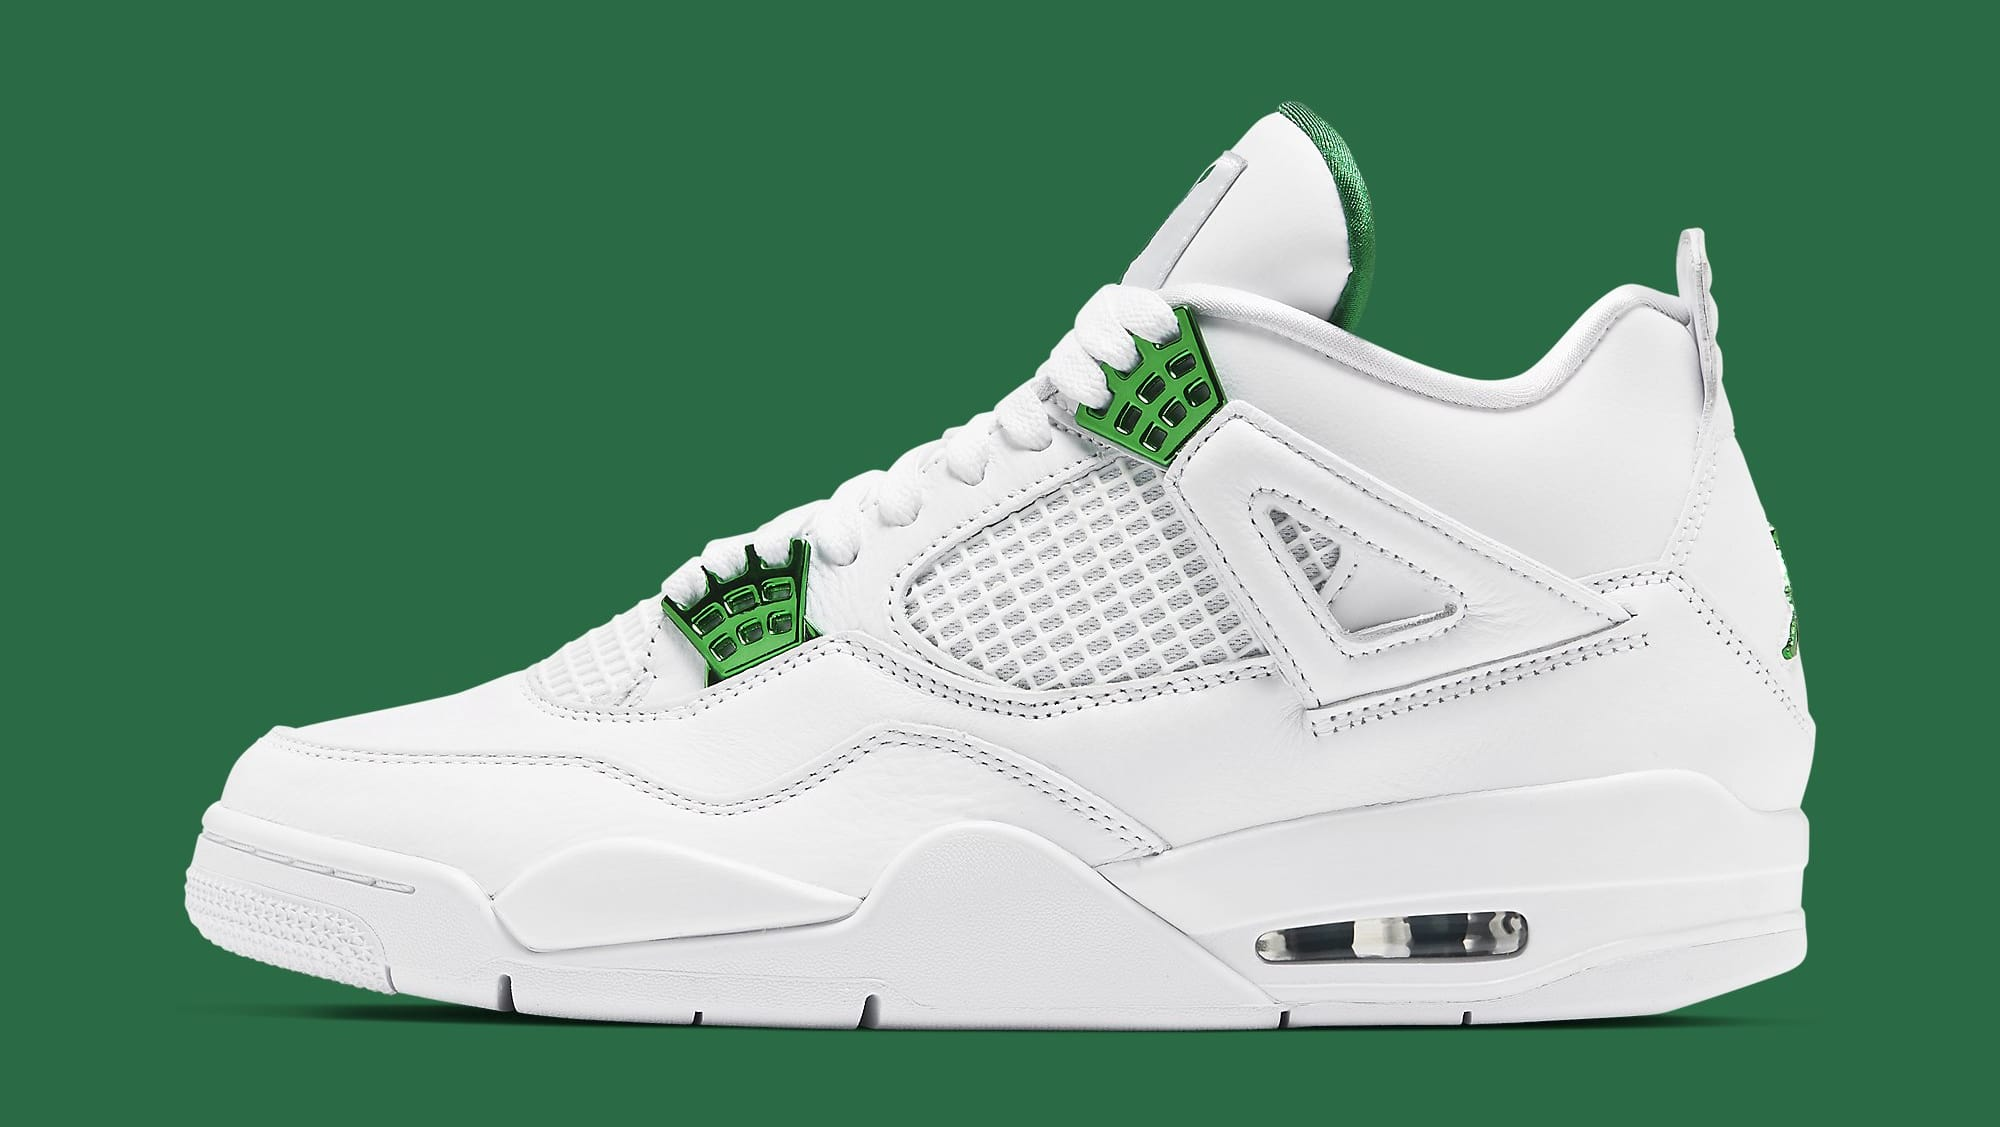 Air Jordan 4 Retro 'Metallic Green